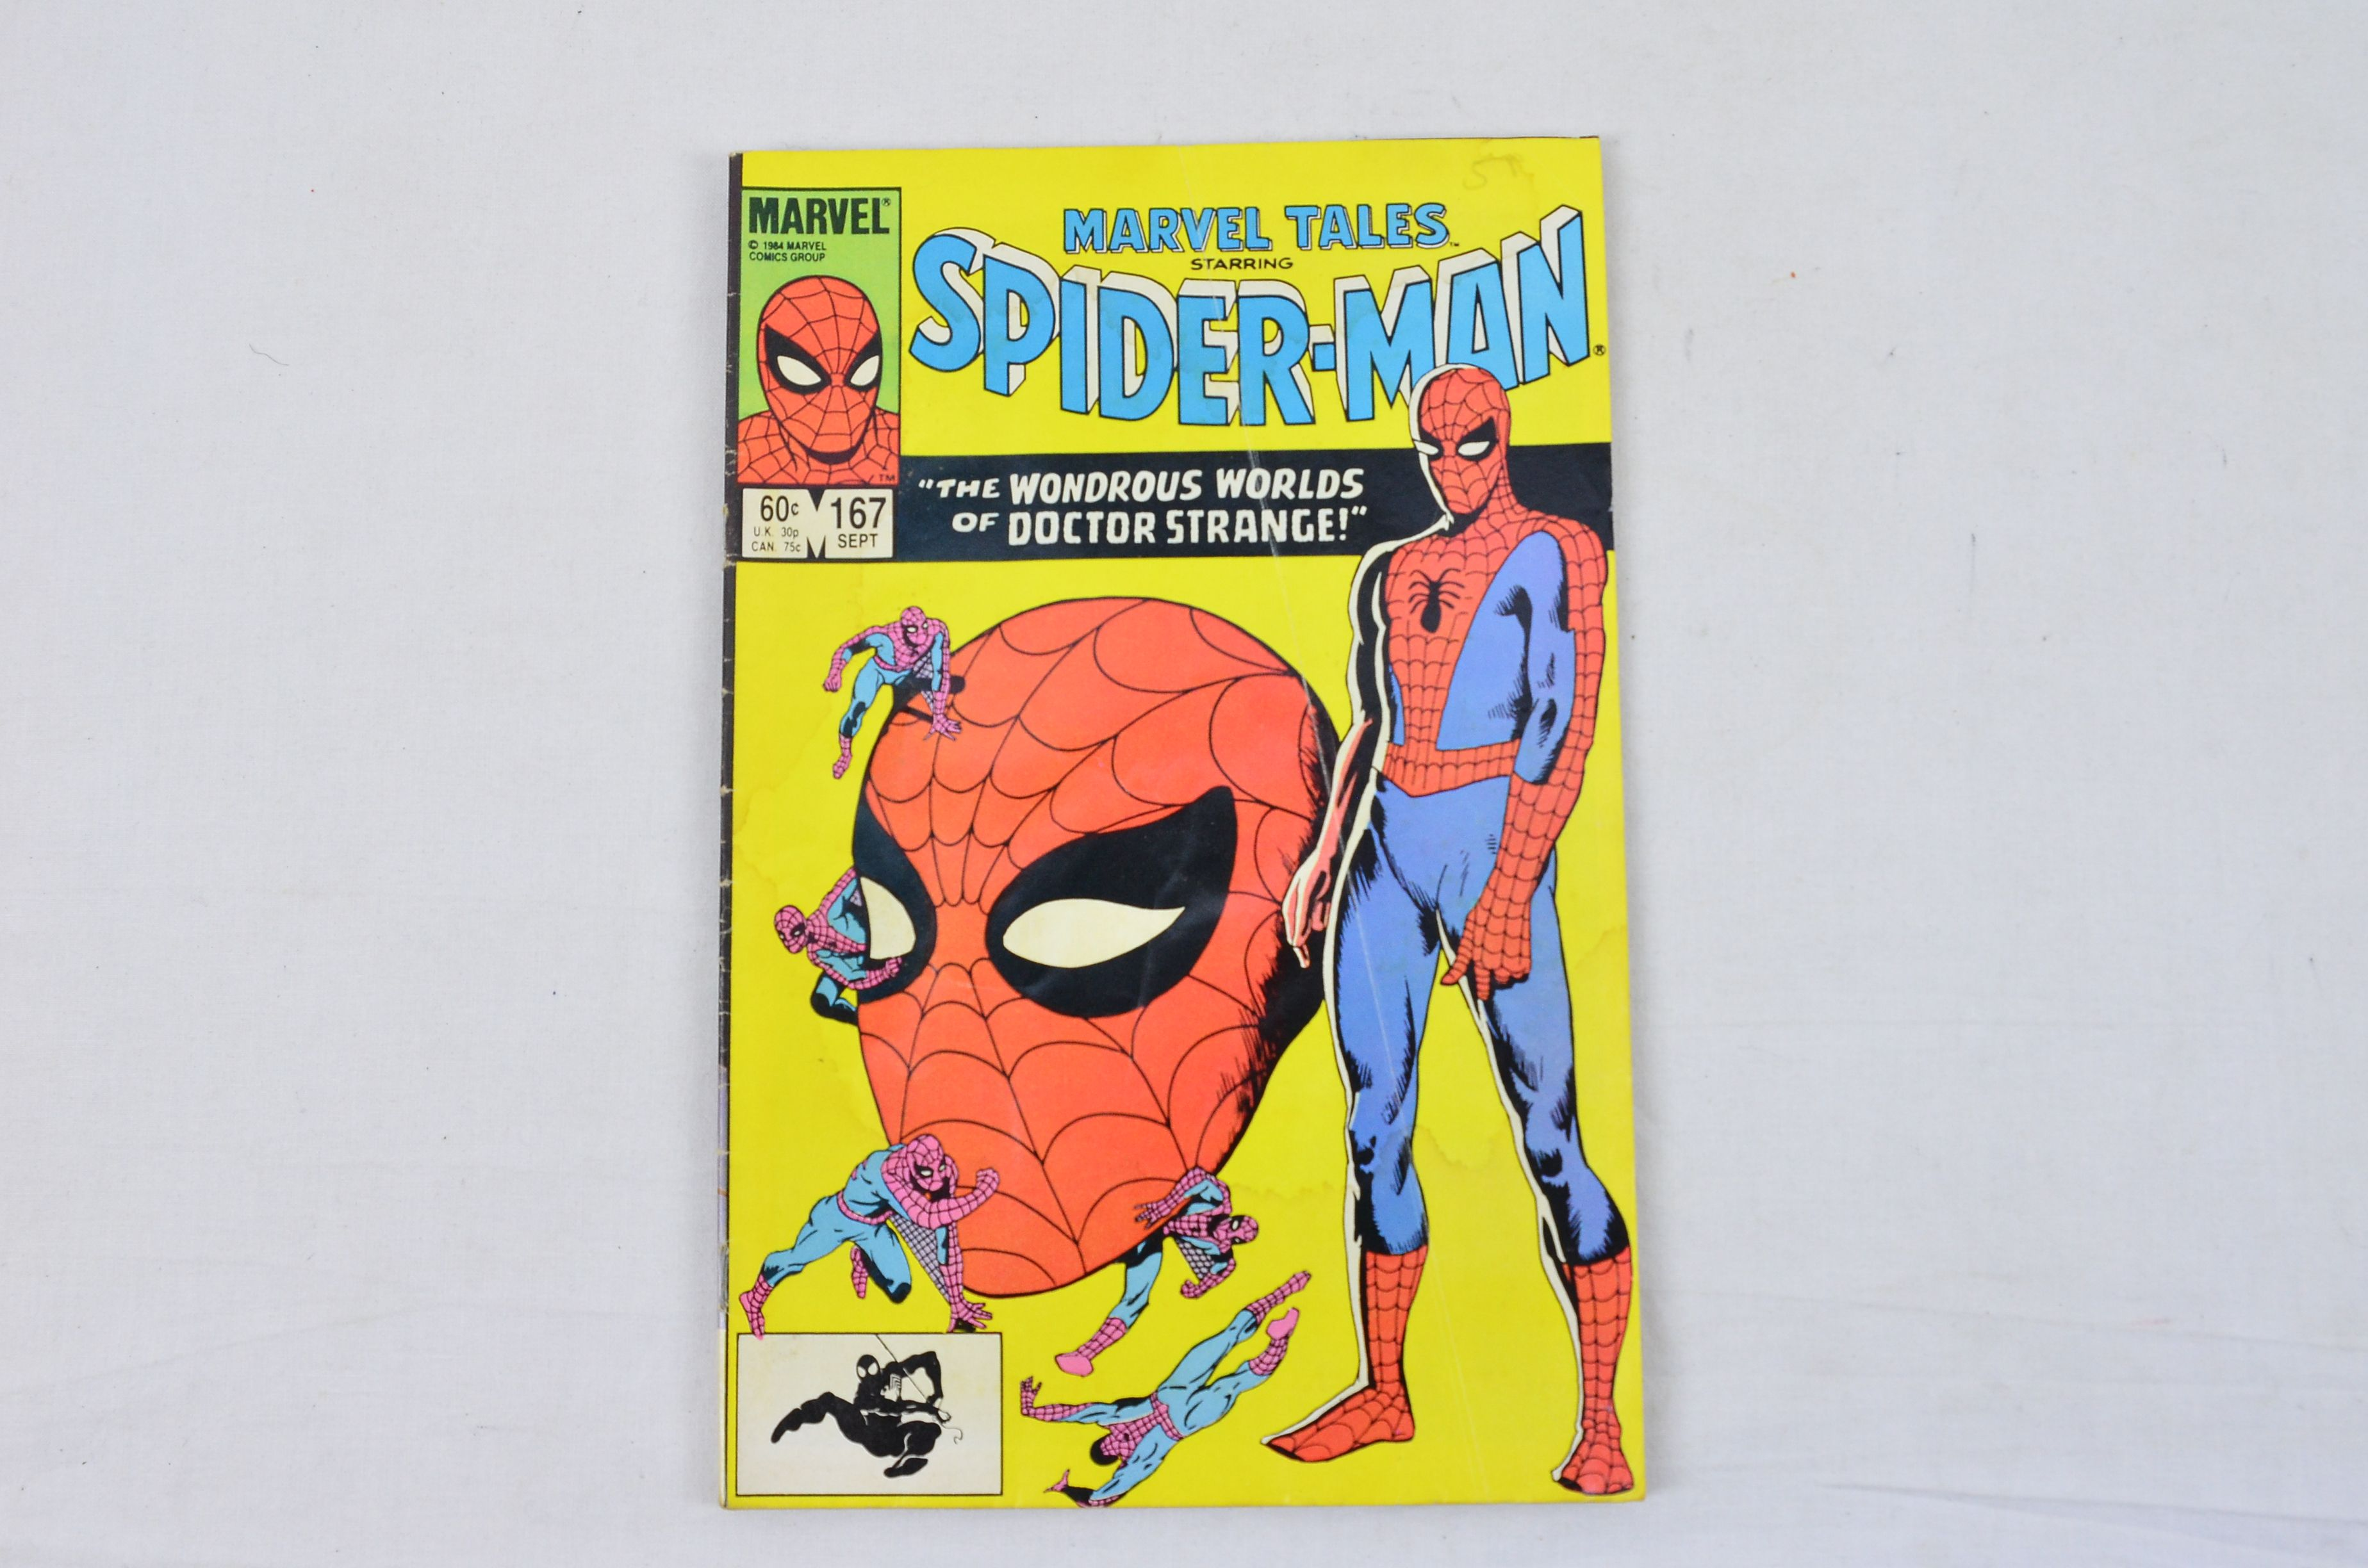 Vintage Marvel Comics Group Peter Parker, The Spectacular Spider-Man Collectable 3